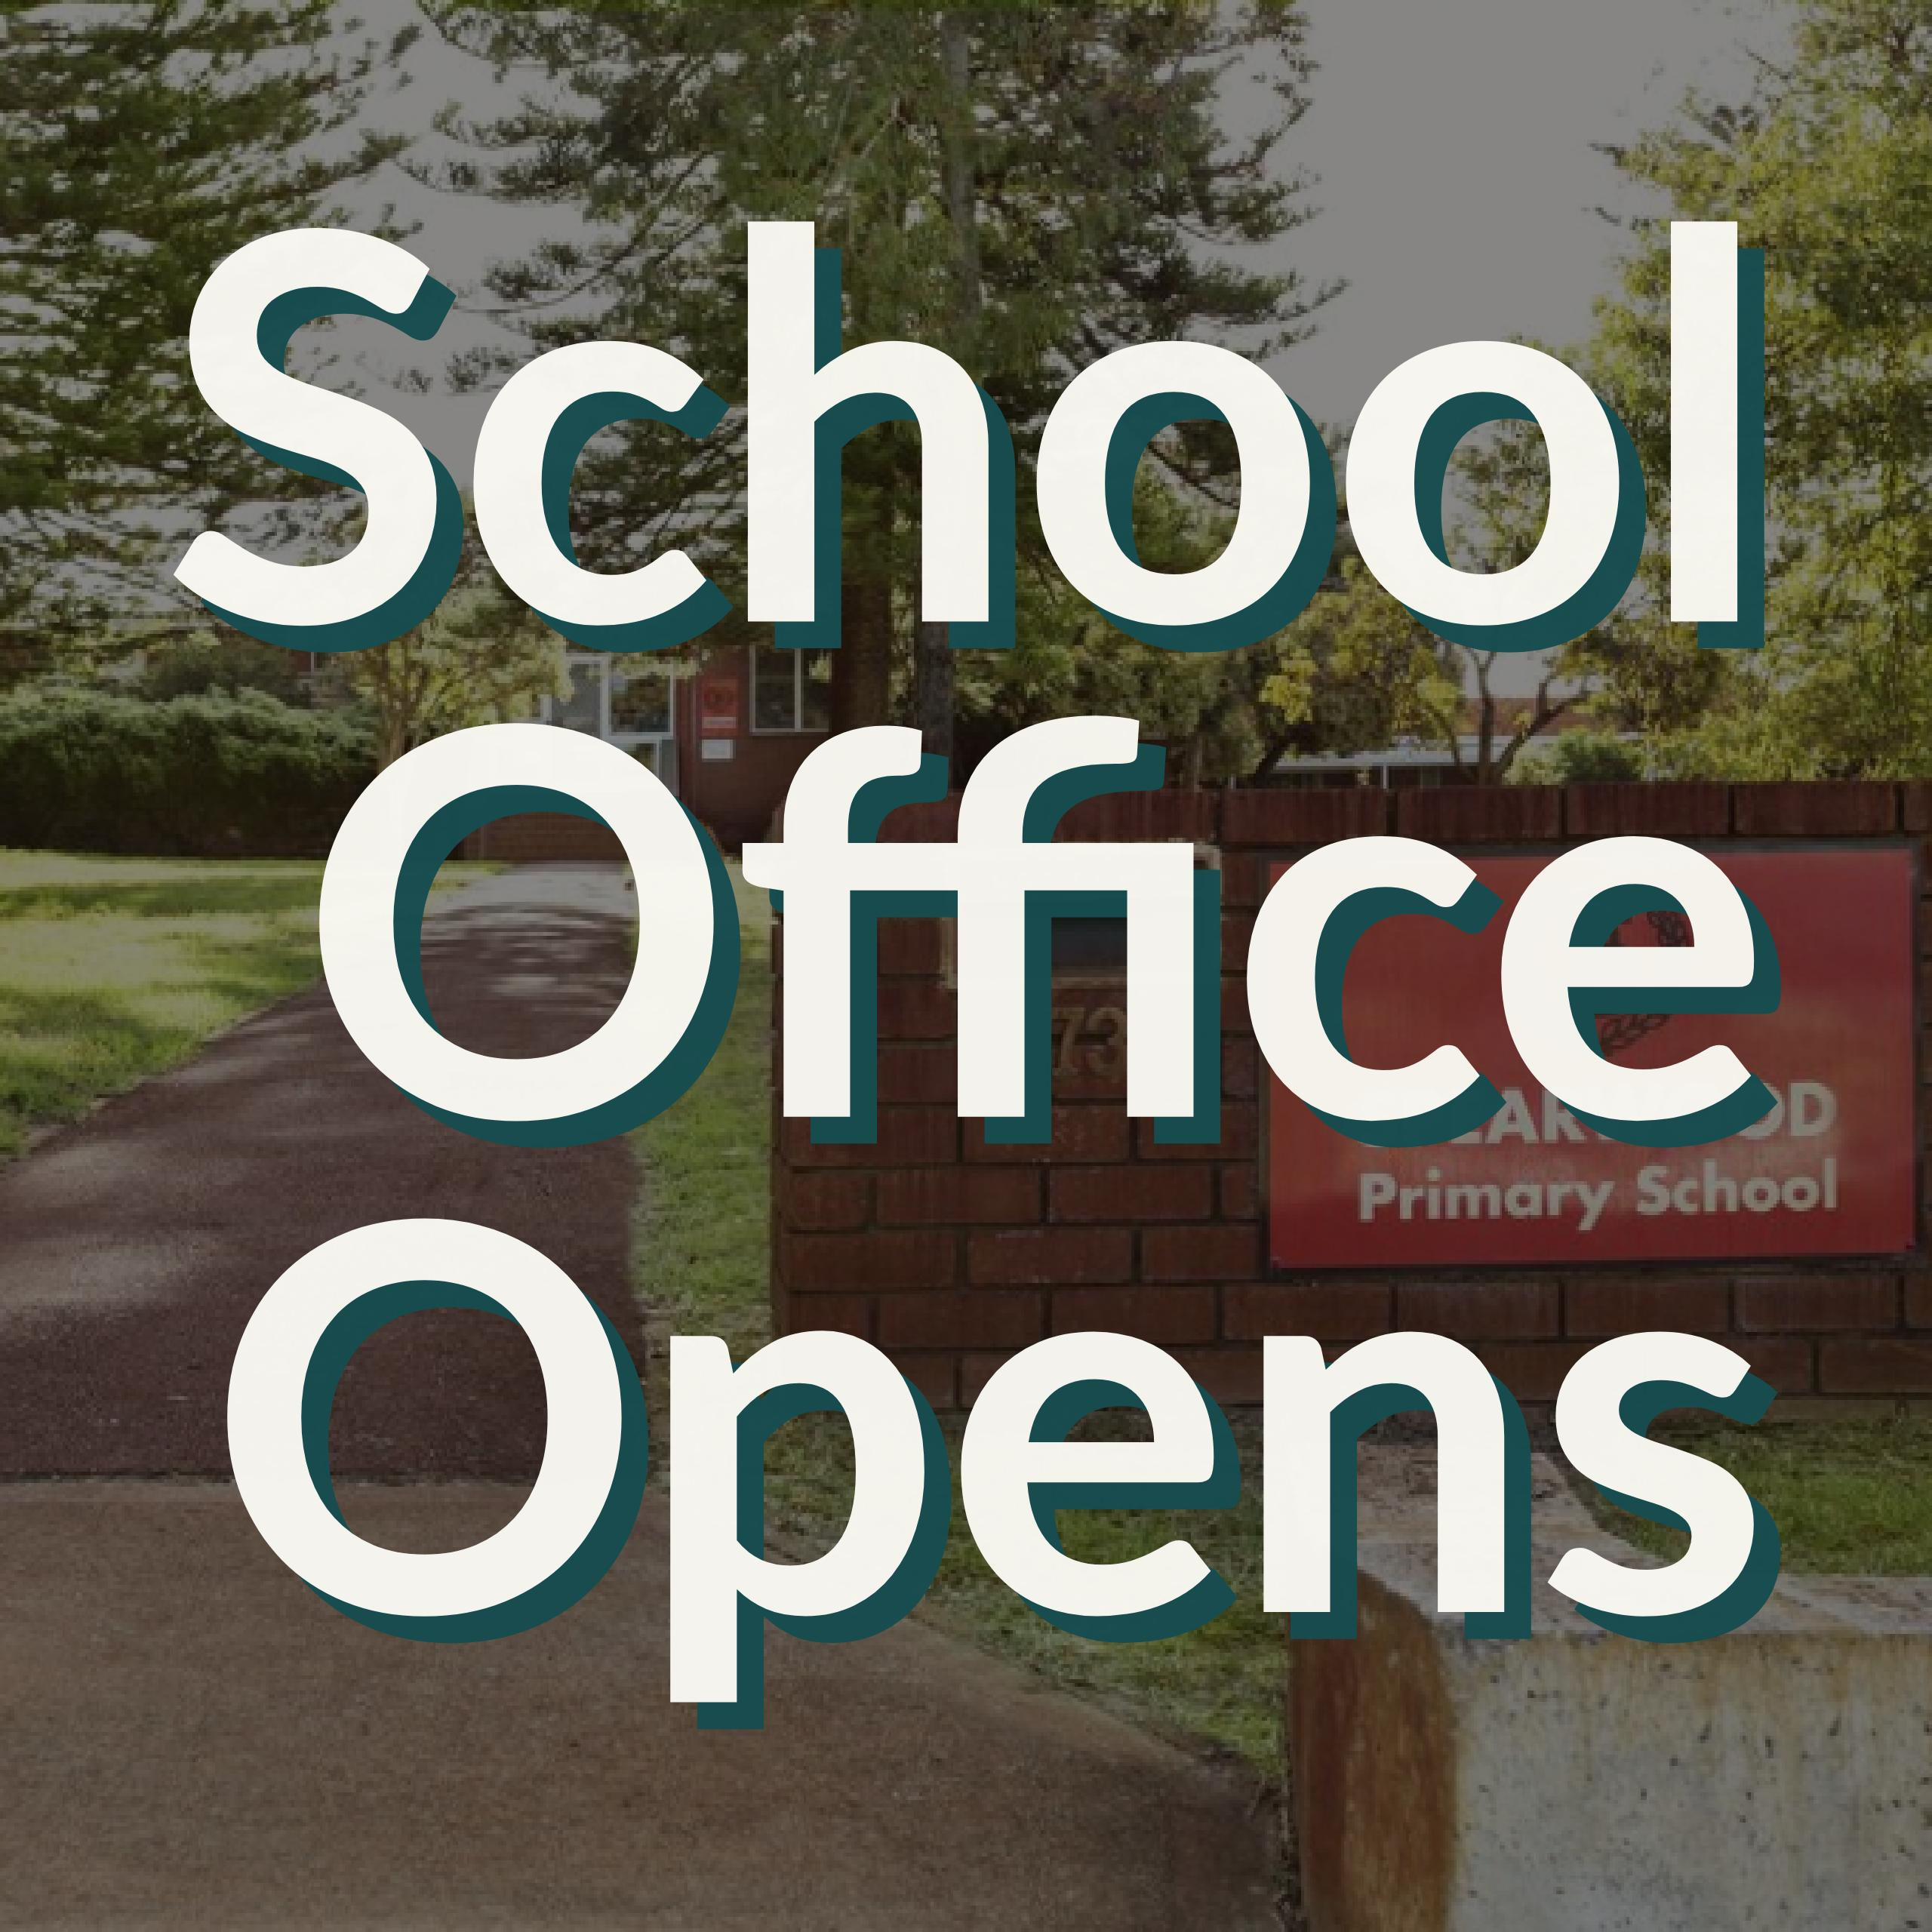 School Office Opens